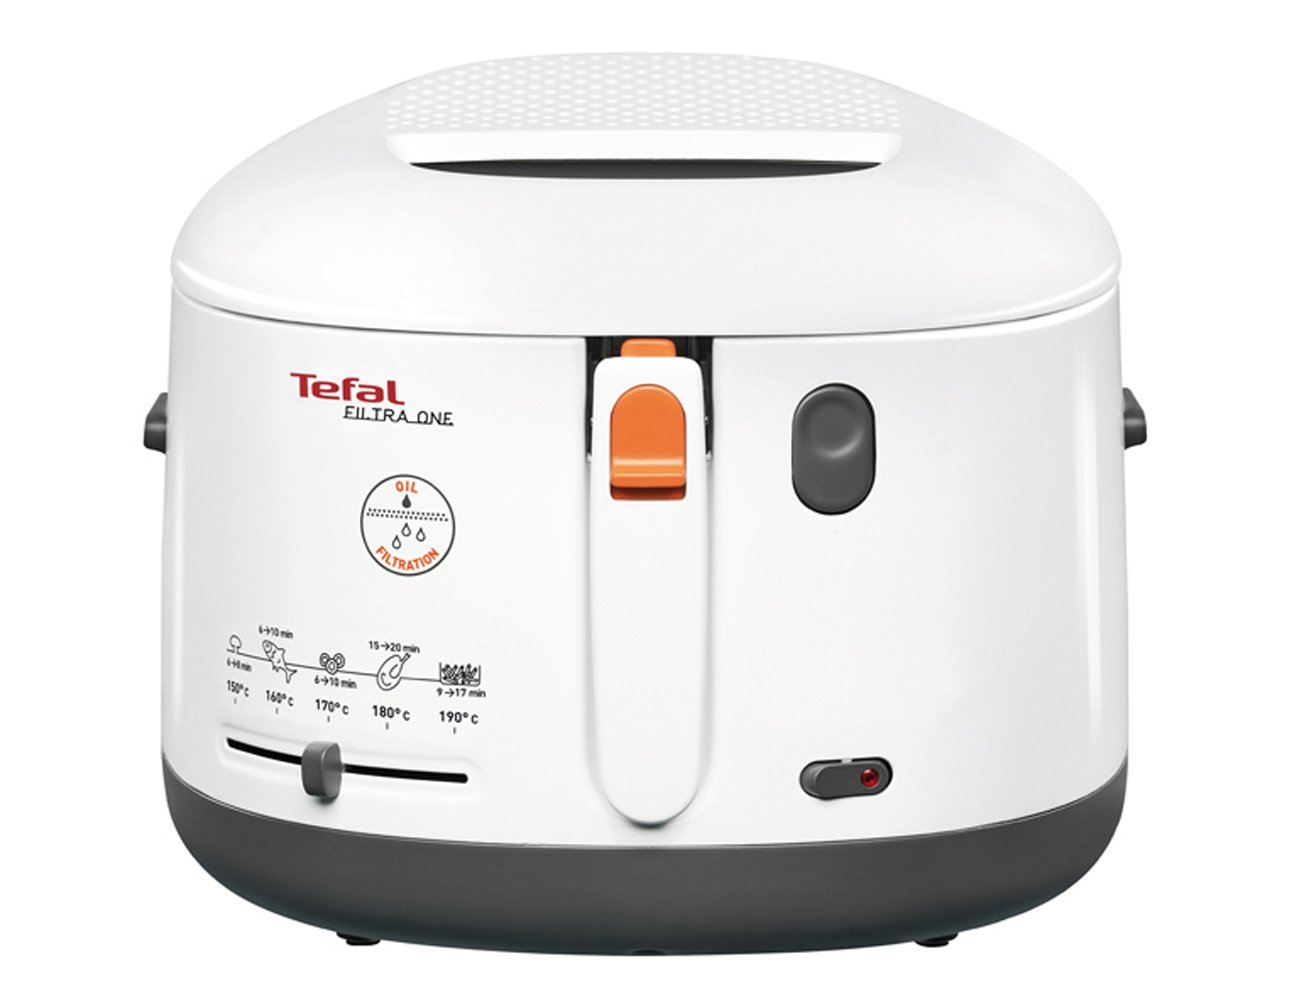 Tefal Ff1631 Fritteuse One Filtra Im Vergleichstest 2018